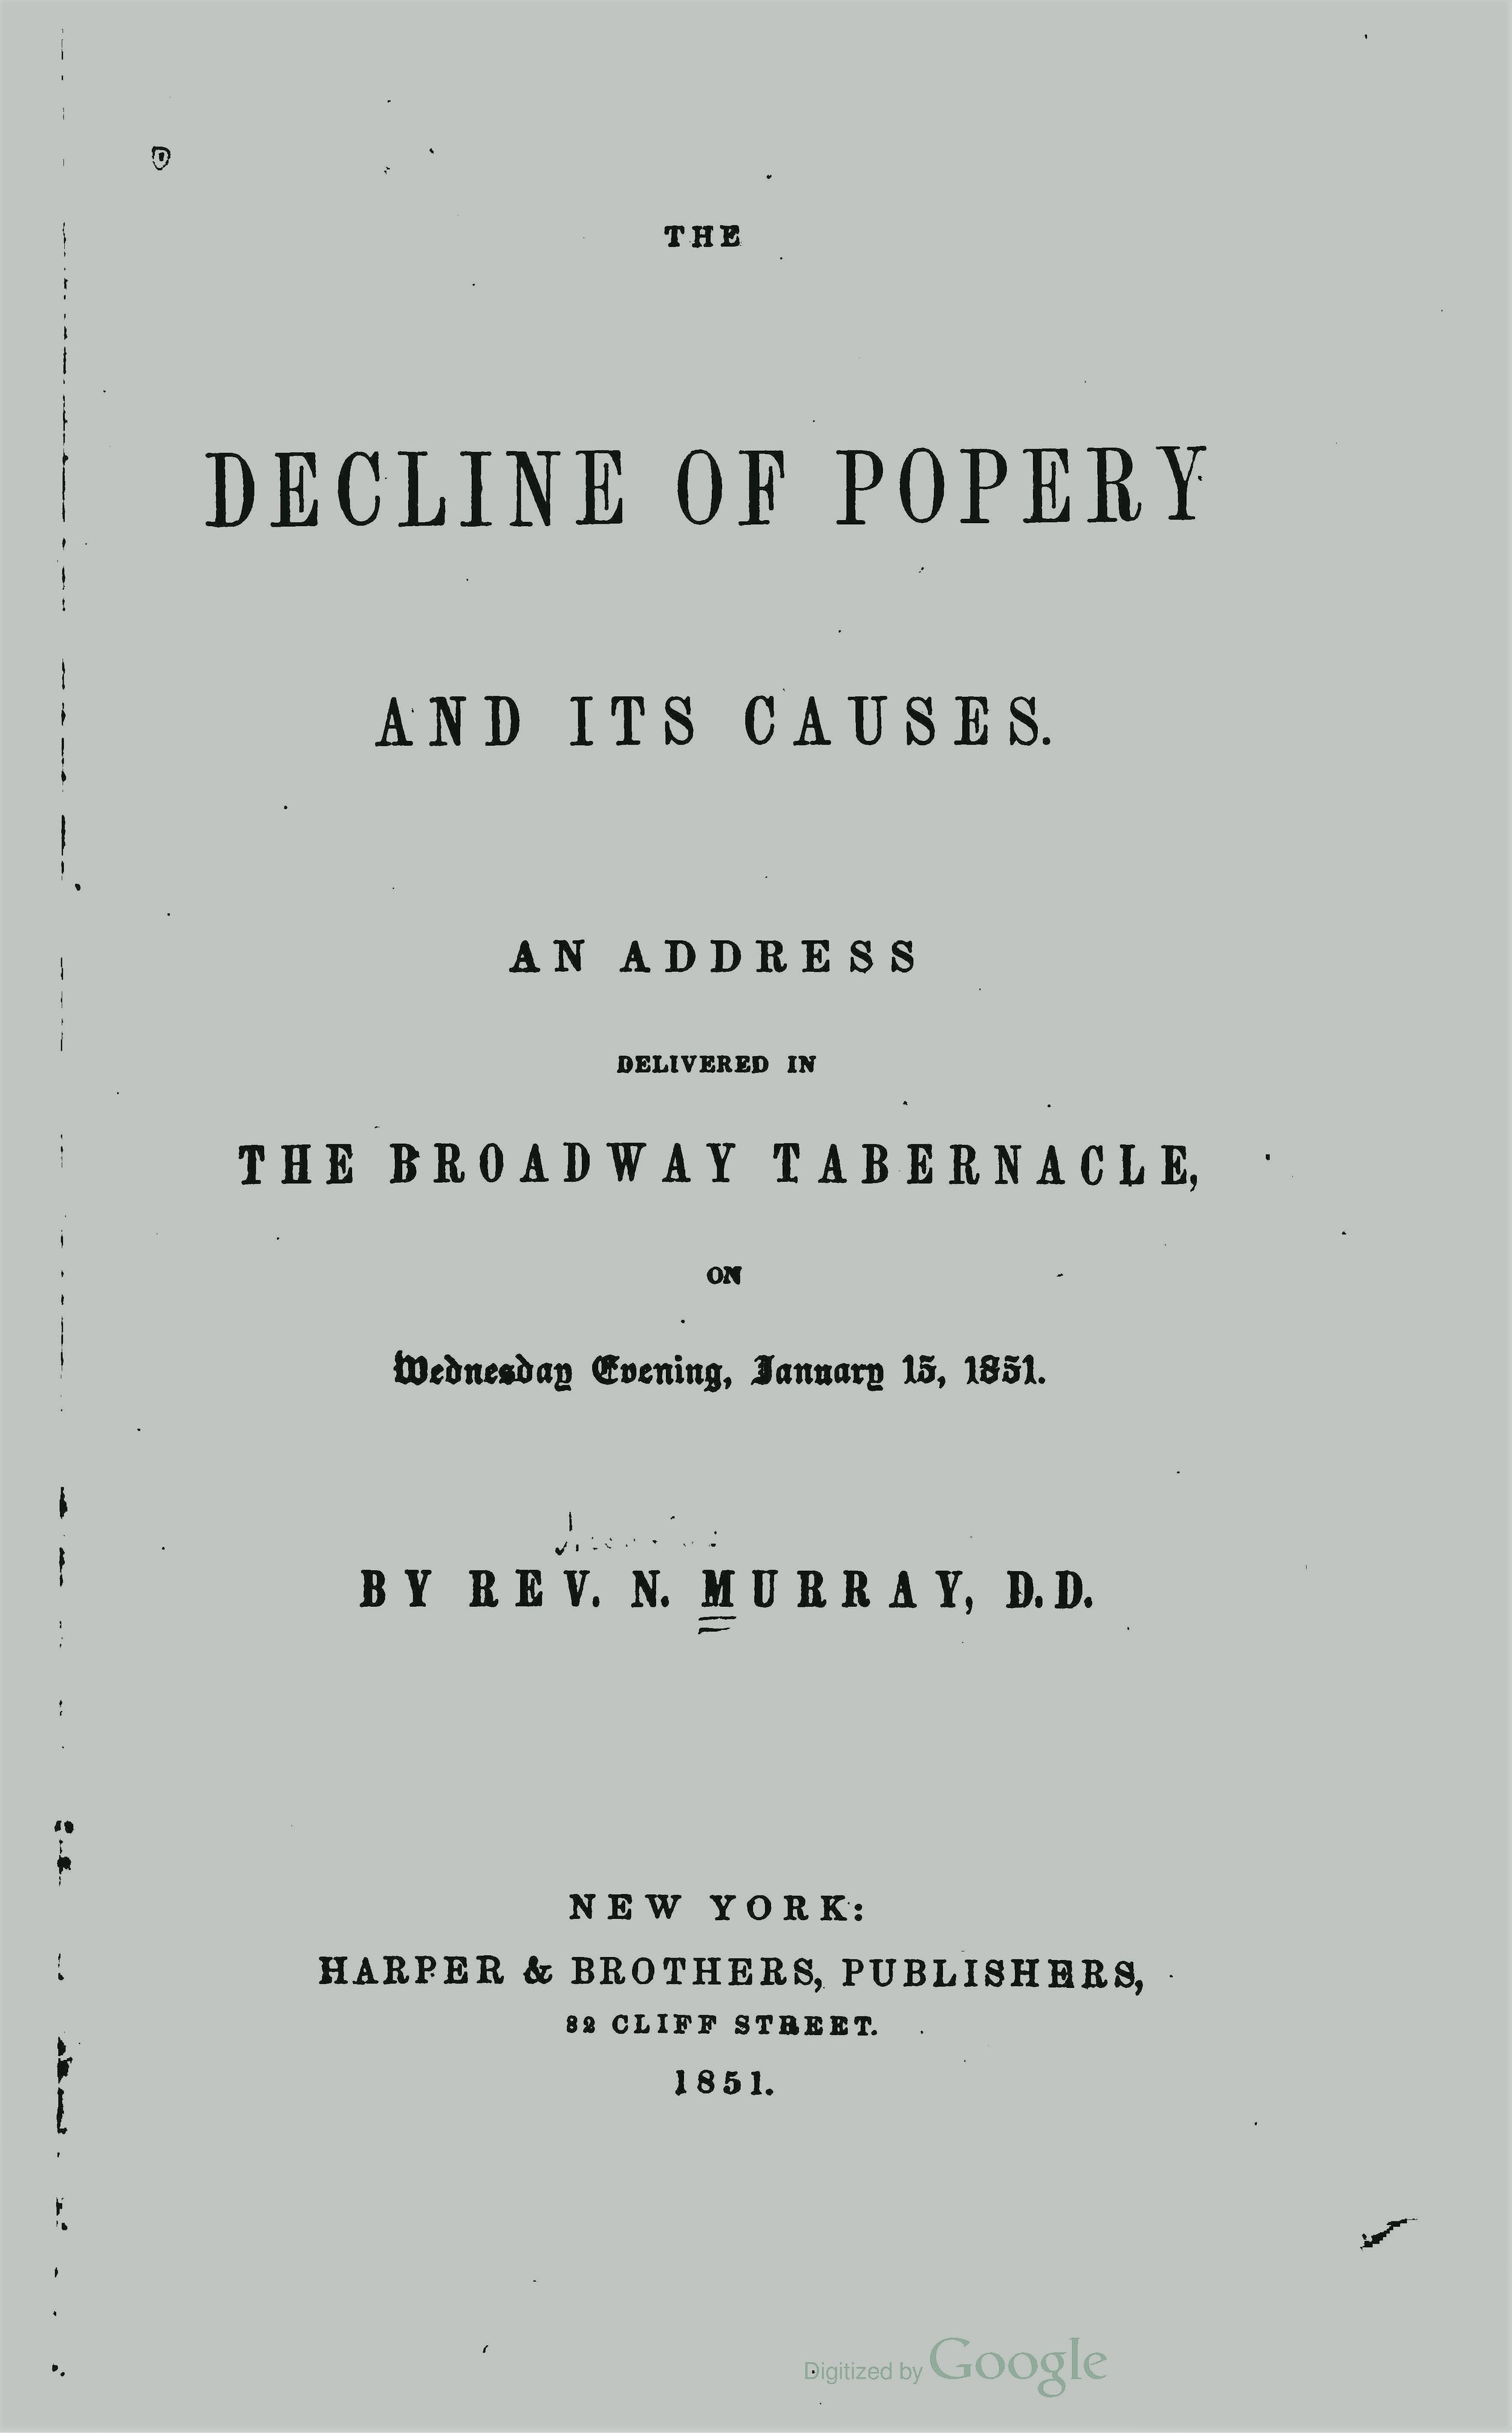 Murray, Nicholas, The Decline of Popery and Its Causes Title Page.jpg